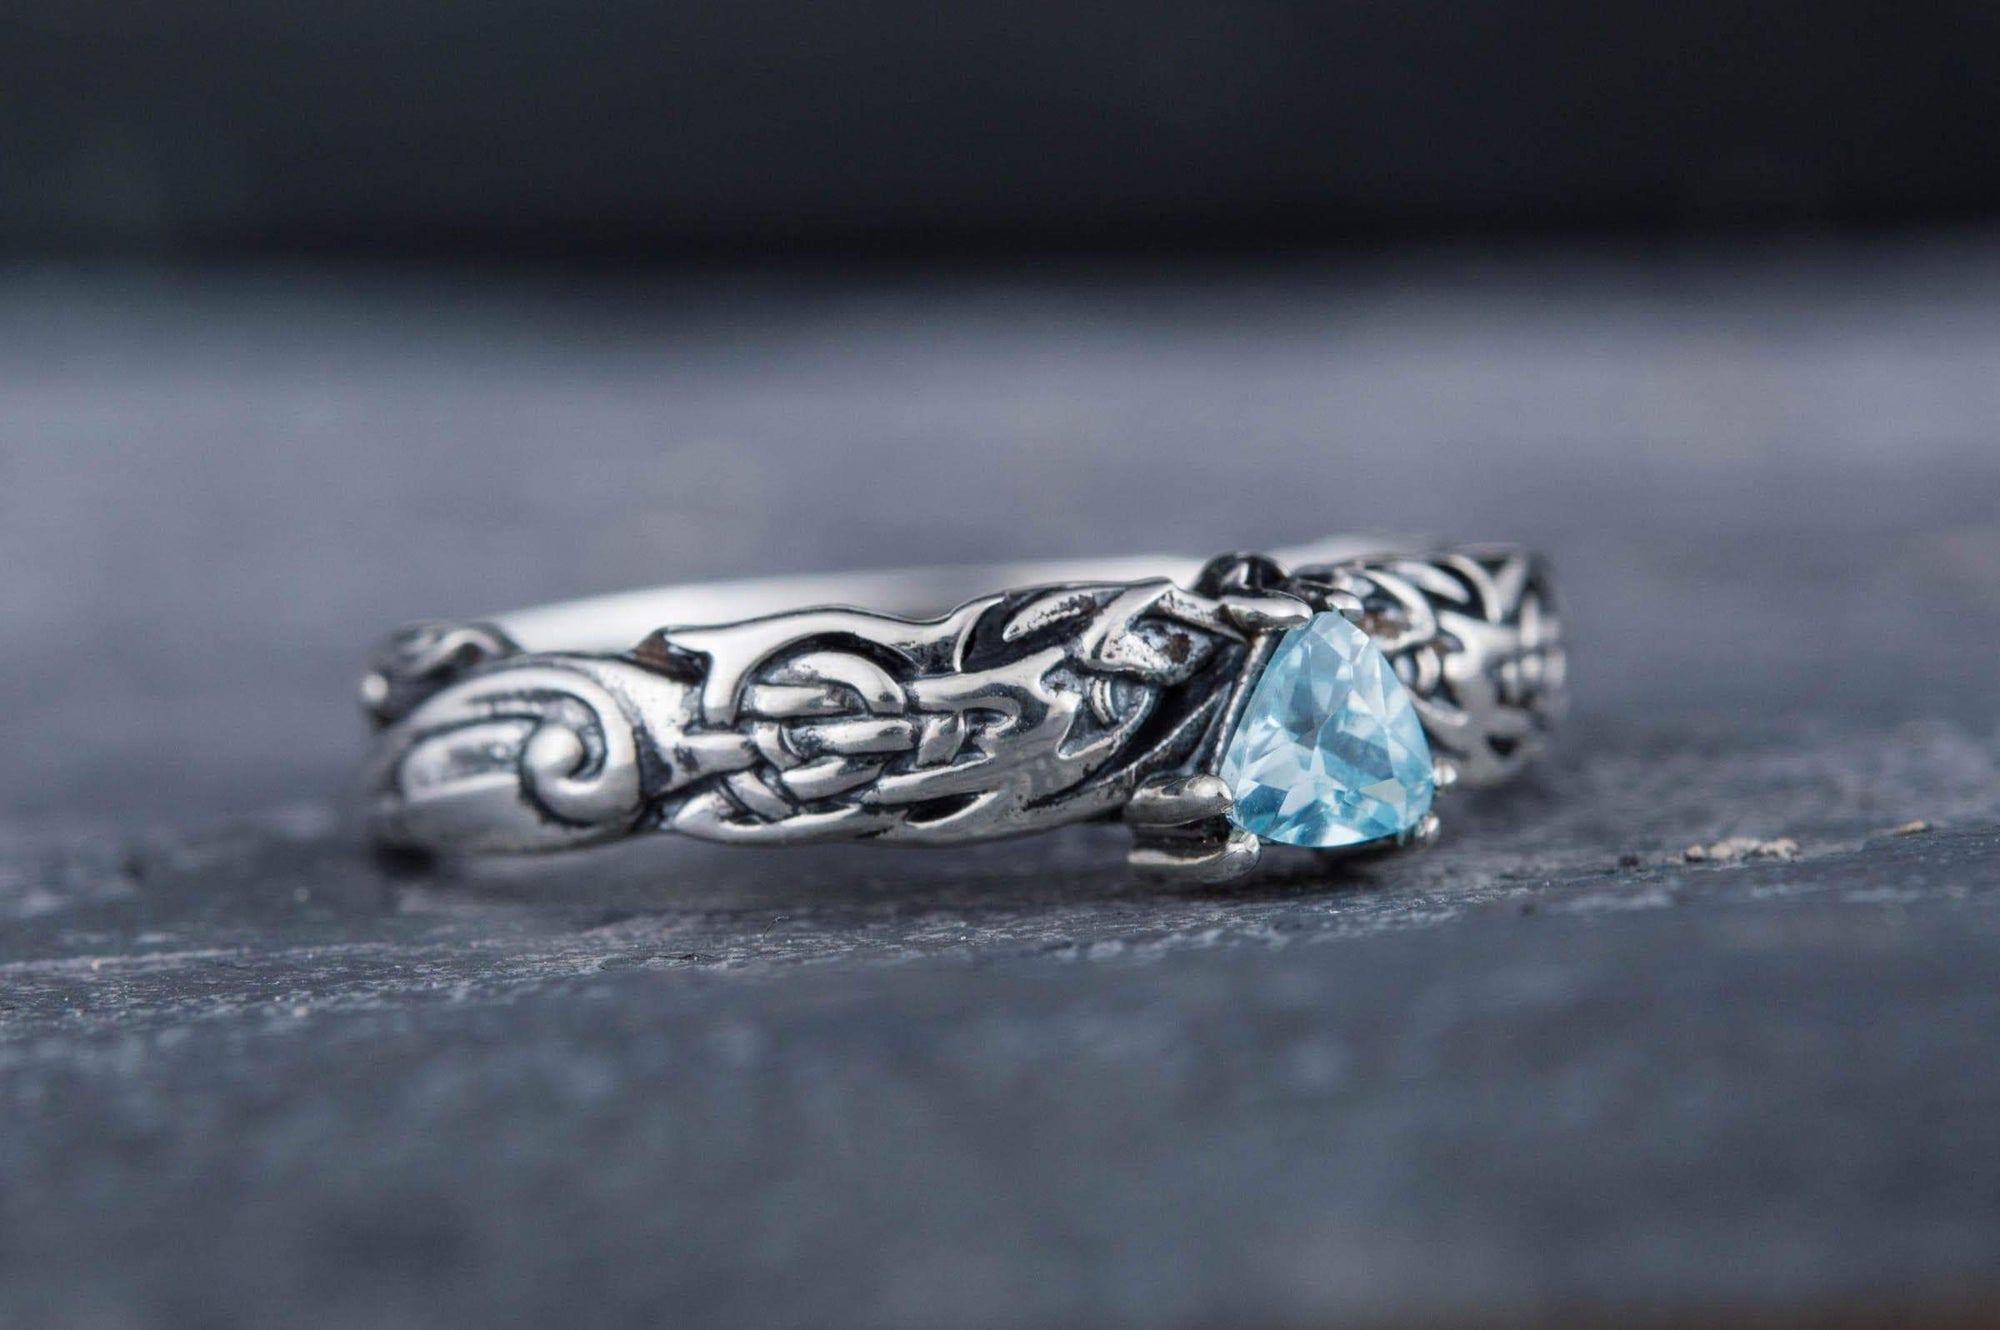 Rings Vikings Ornament Sterling Silver Ring with Blue Cubic Zirconia Ancient Treasures Ancientreasures Viking Odin Thor Mjolnir Celtic Ancient Egypt Norse Norse Mythology